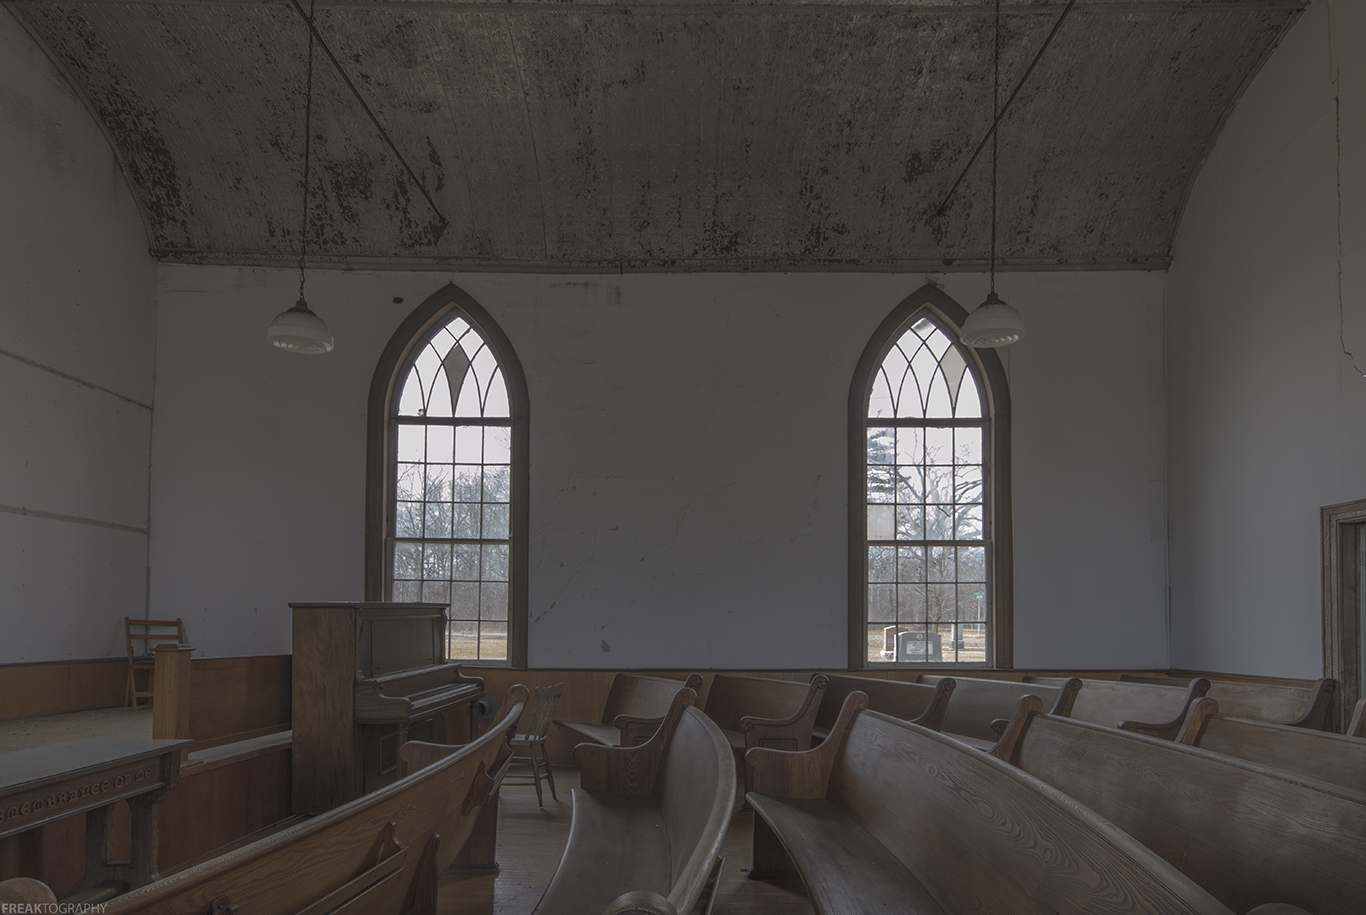 A Vacant old Ontario Church photographed by freaktography, Freaktography, abandoned, abandoned photography, abandoned places, creepy, decay, derelict, haunted, haunted places, photography, urban exploration, urban exploration photography, urban explorer, urban exploring